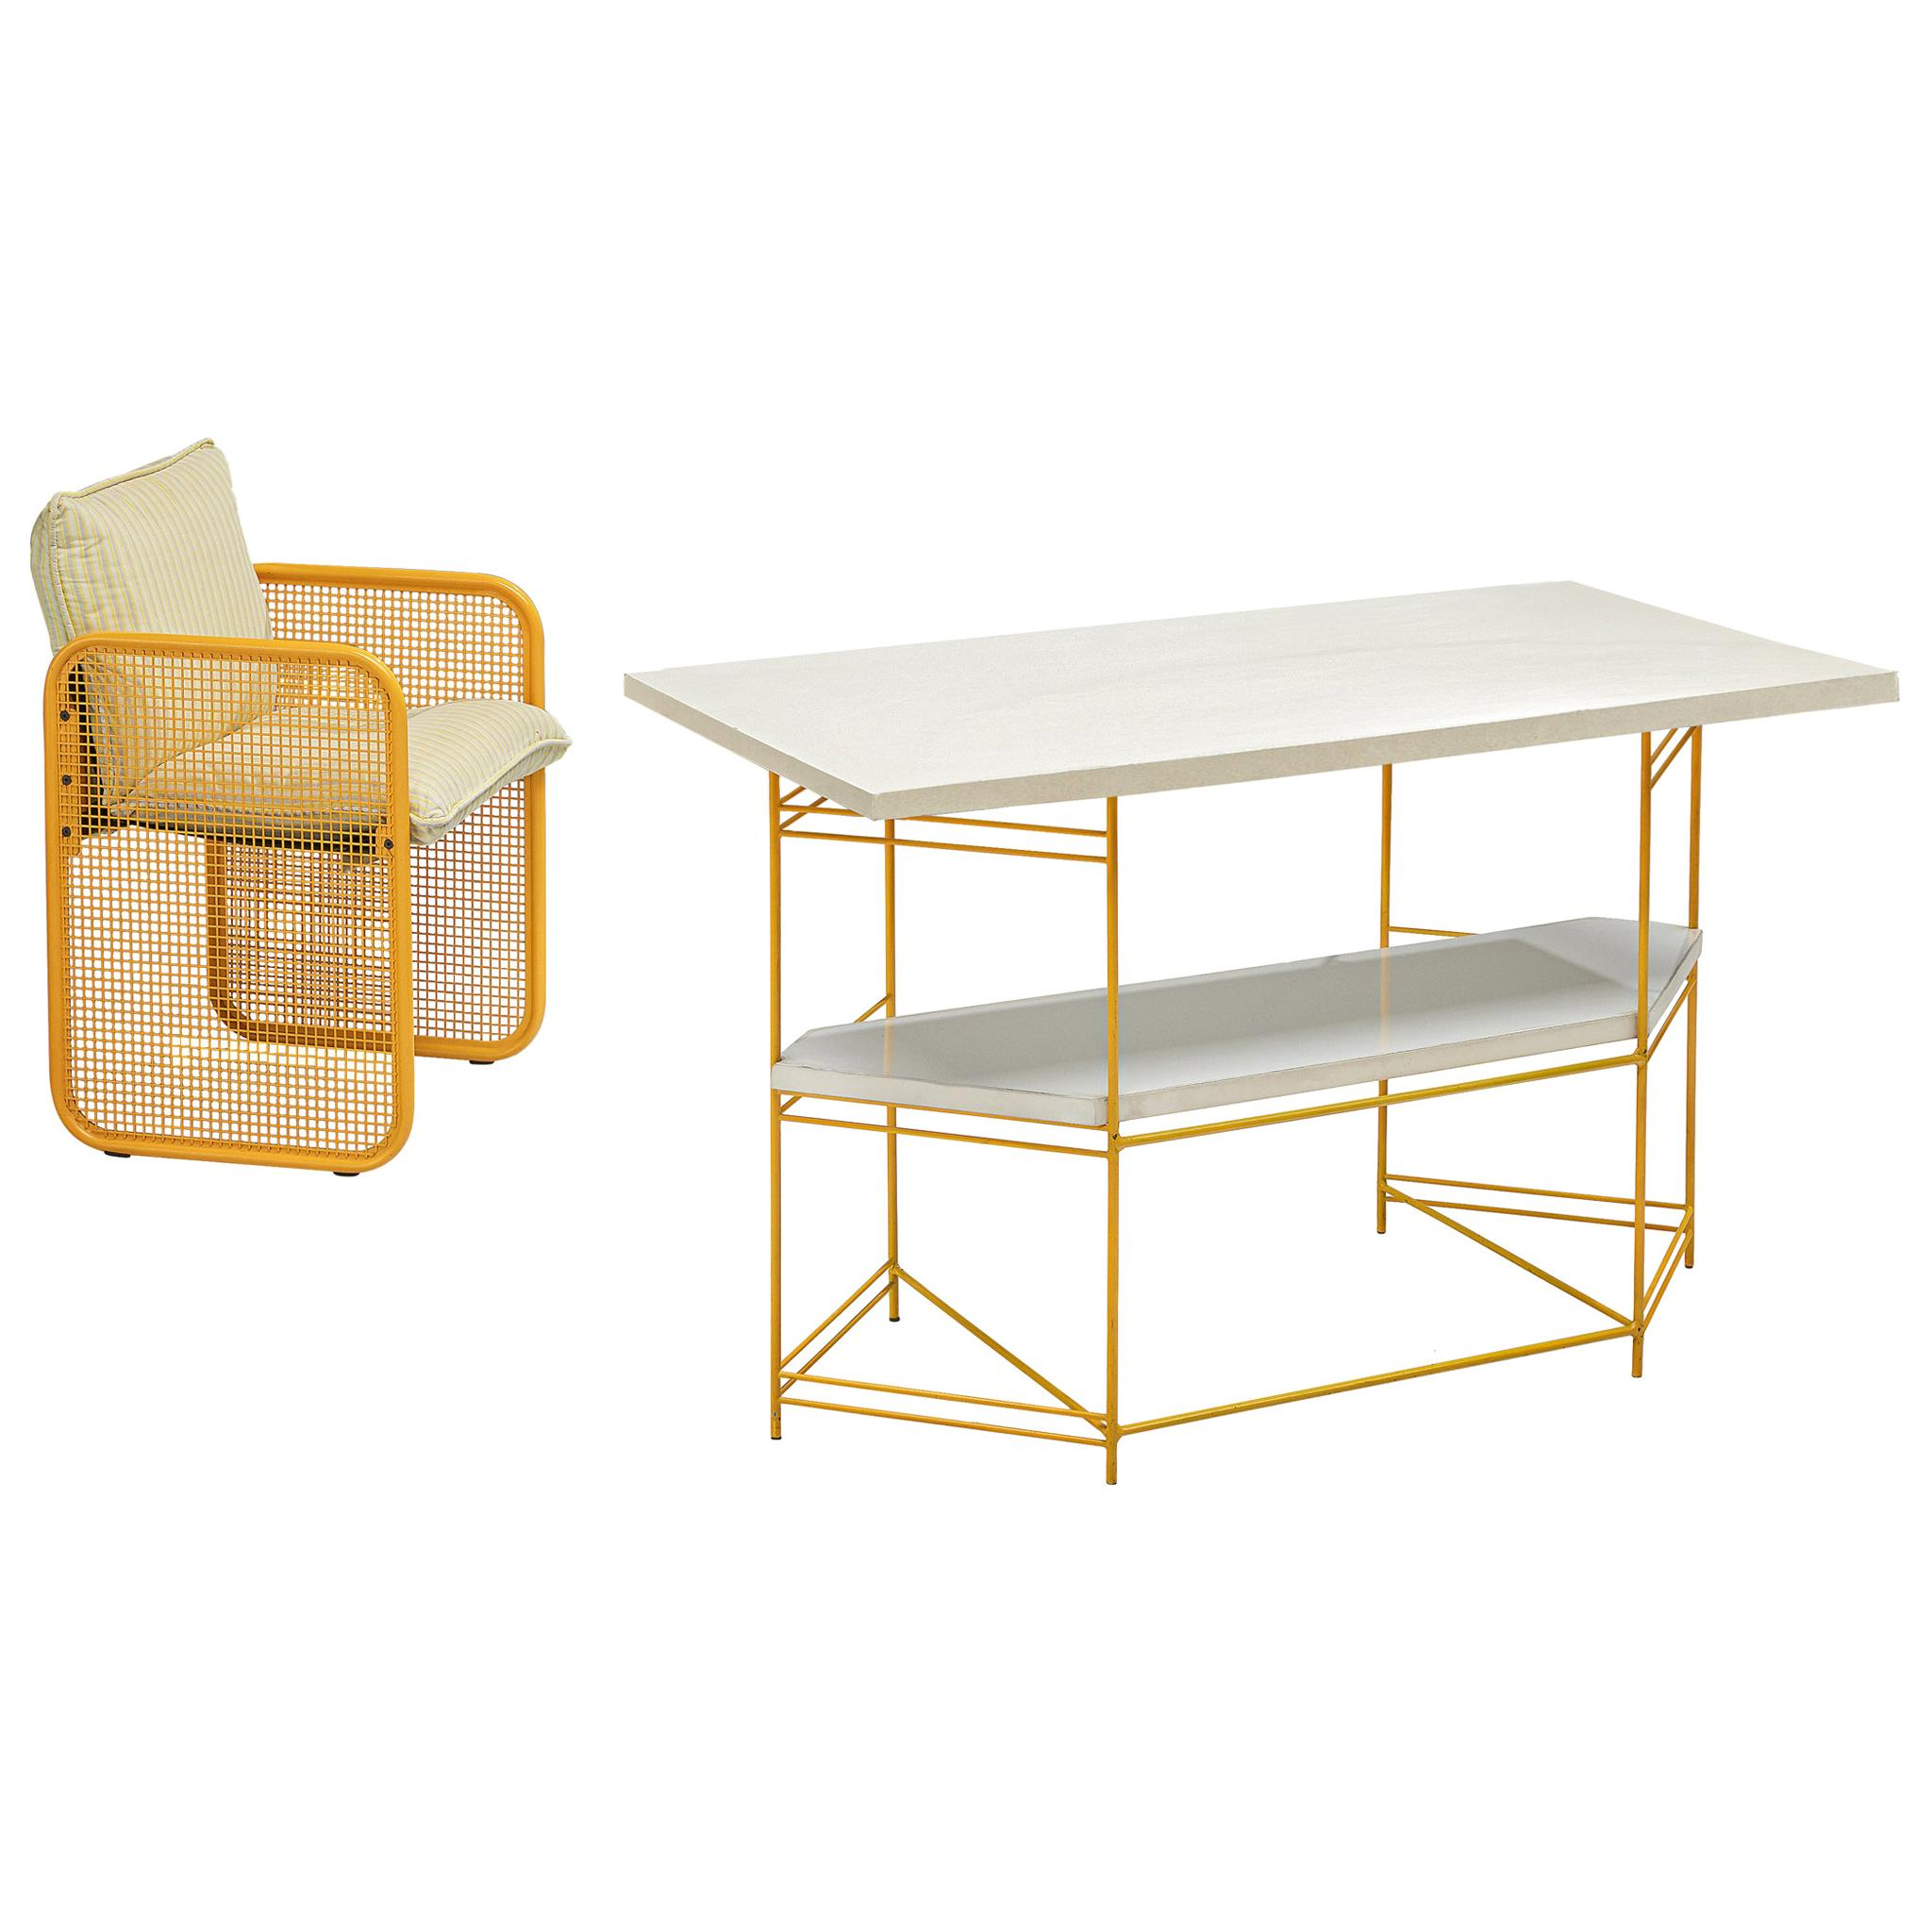 Giotto Stoppino Desk and Armchair, 1970s